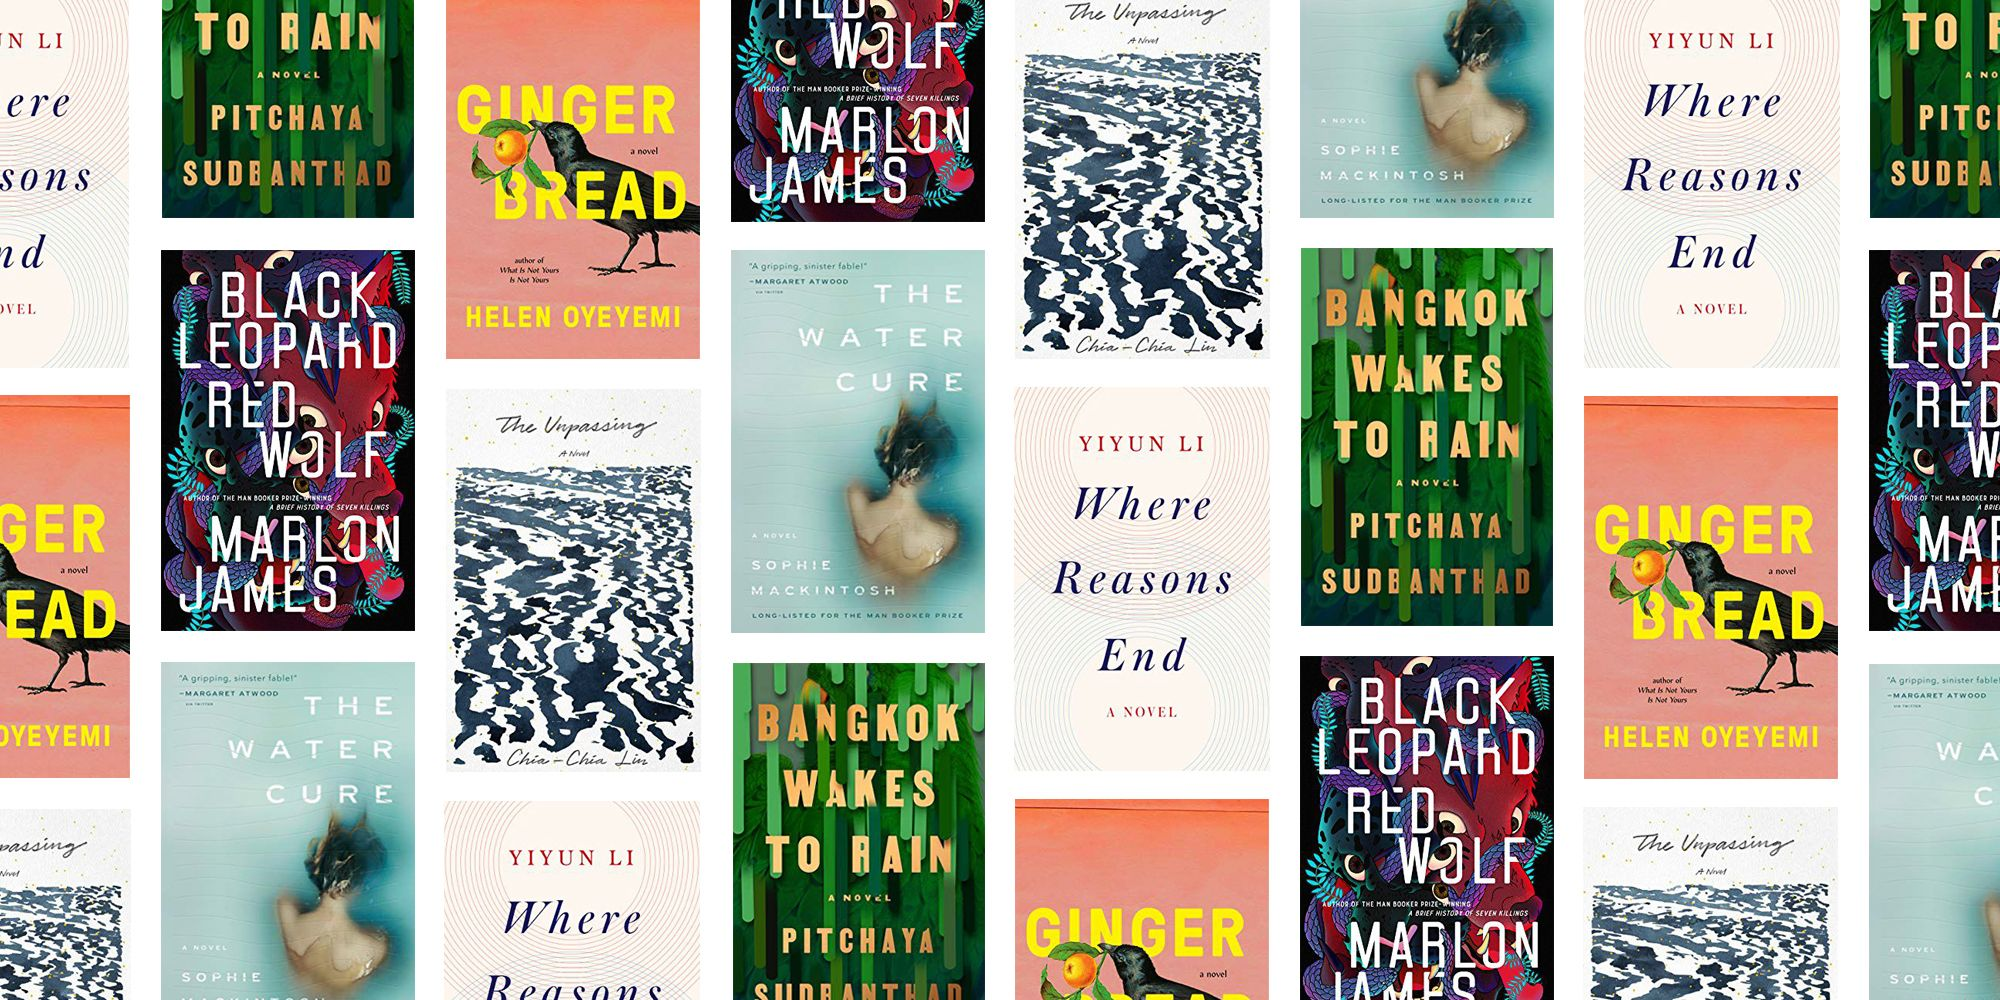 The 25 Most Anticipated Books of 2019